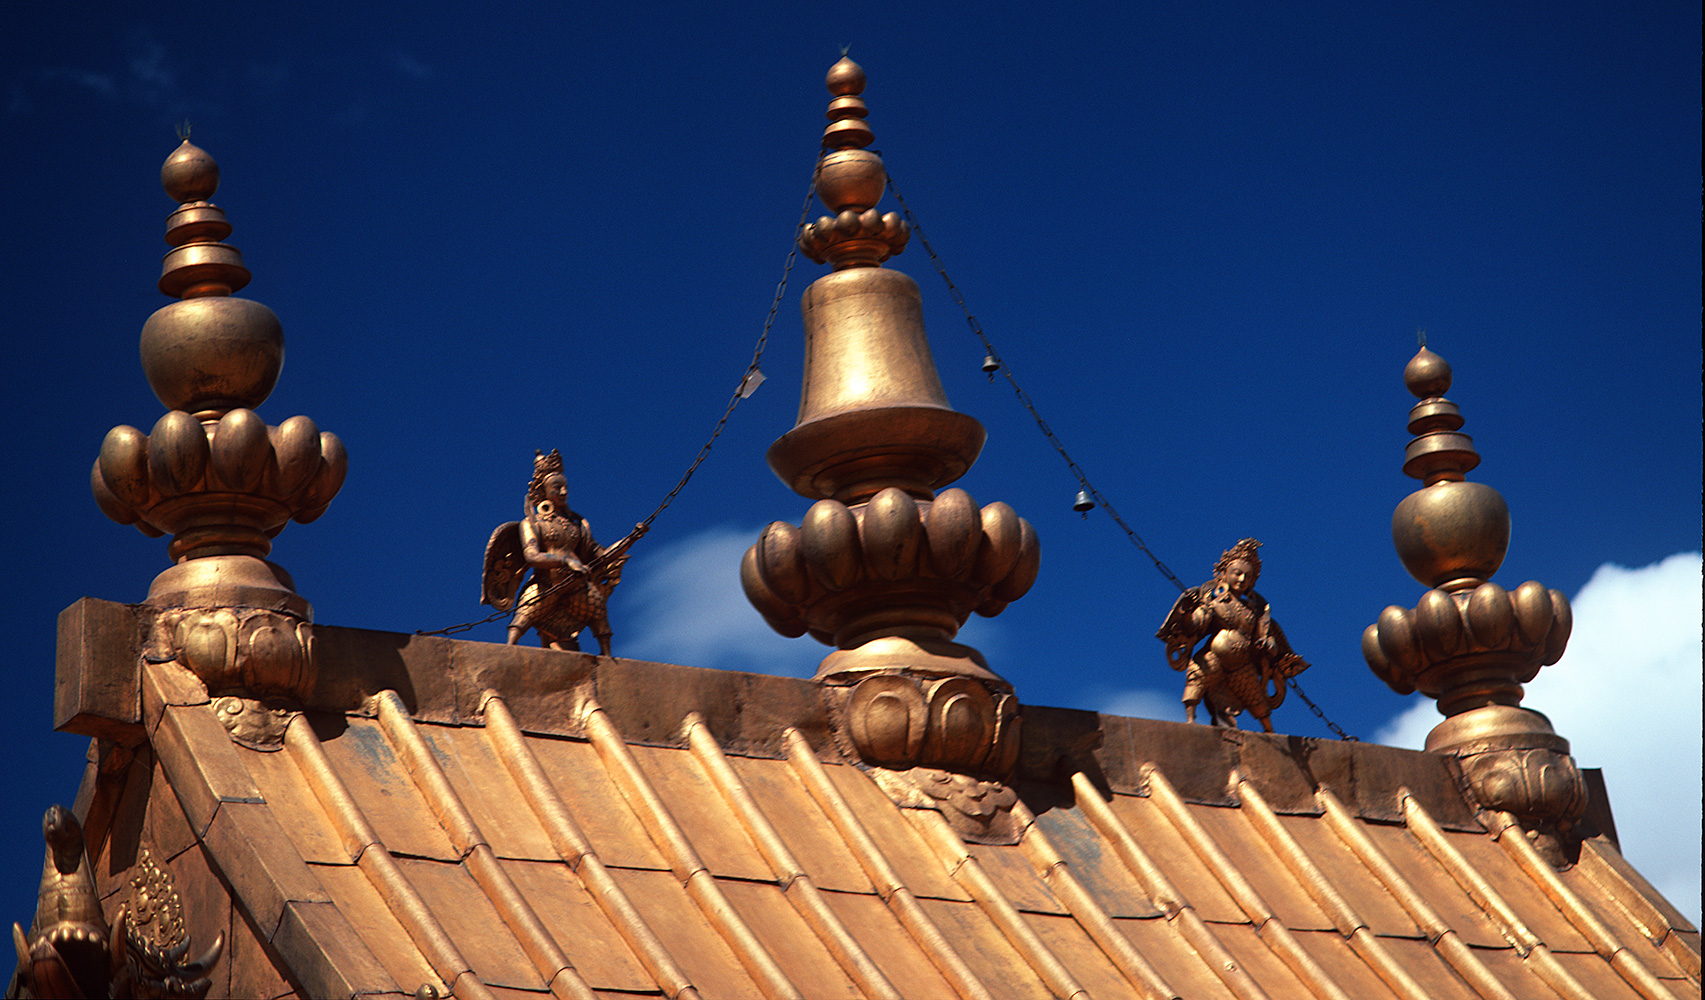 Detail of the gilded roofs in this enormous monastic complex in ShigatseBronica ETRSi, 150mm, Fuji Velvia